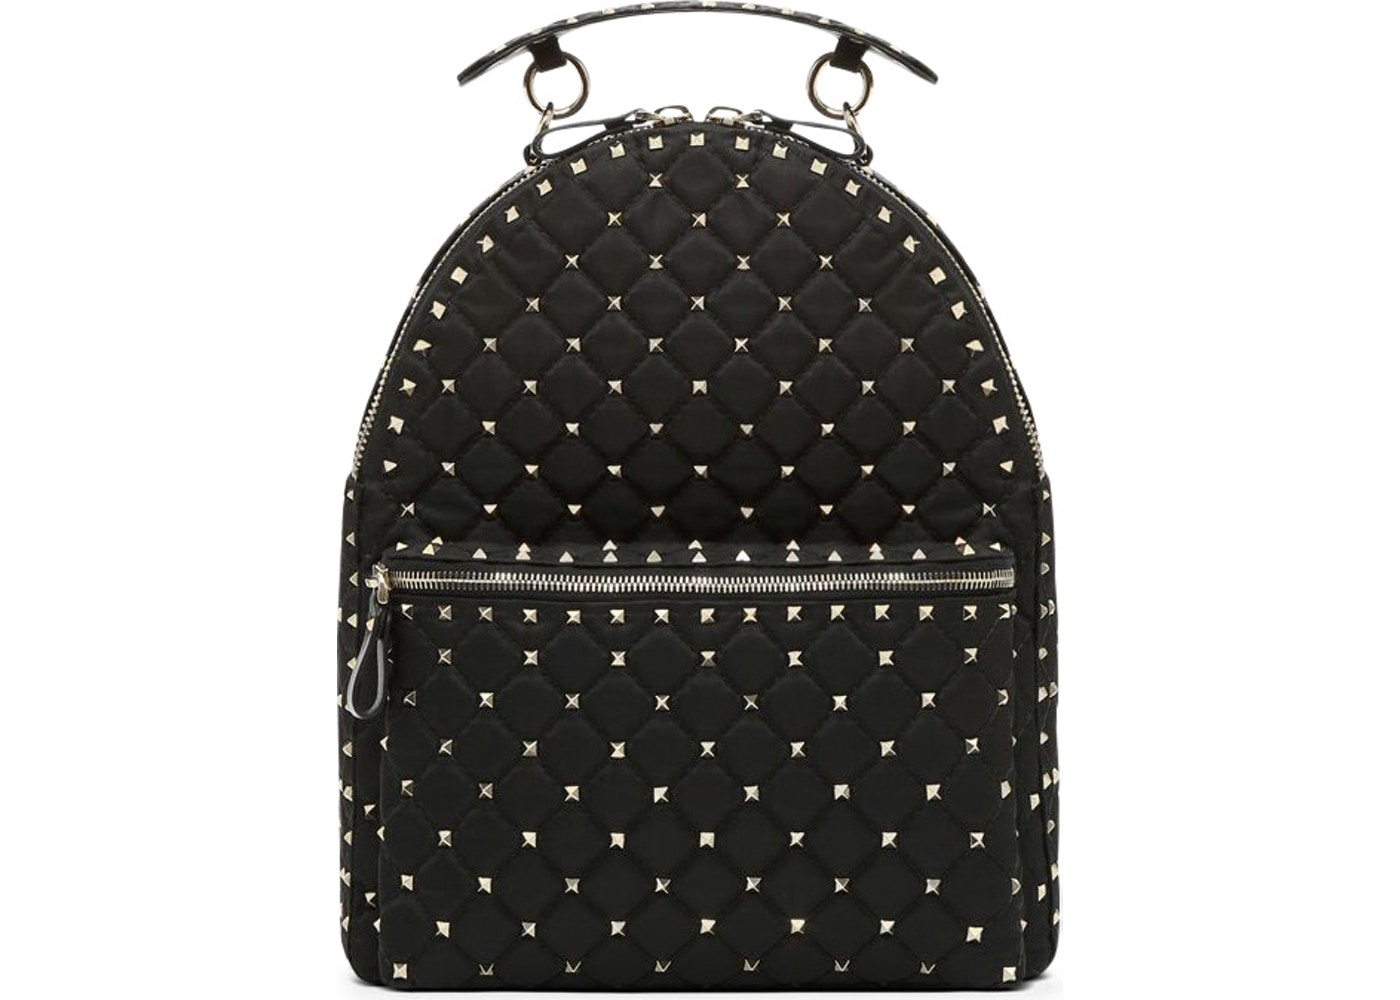 4279cb9639 Valentino Garavani Free Rockstud Spike Large Leather Shoulder Bag -   Source. Valentino Rockstud Spike Backpack Nylon Black